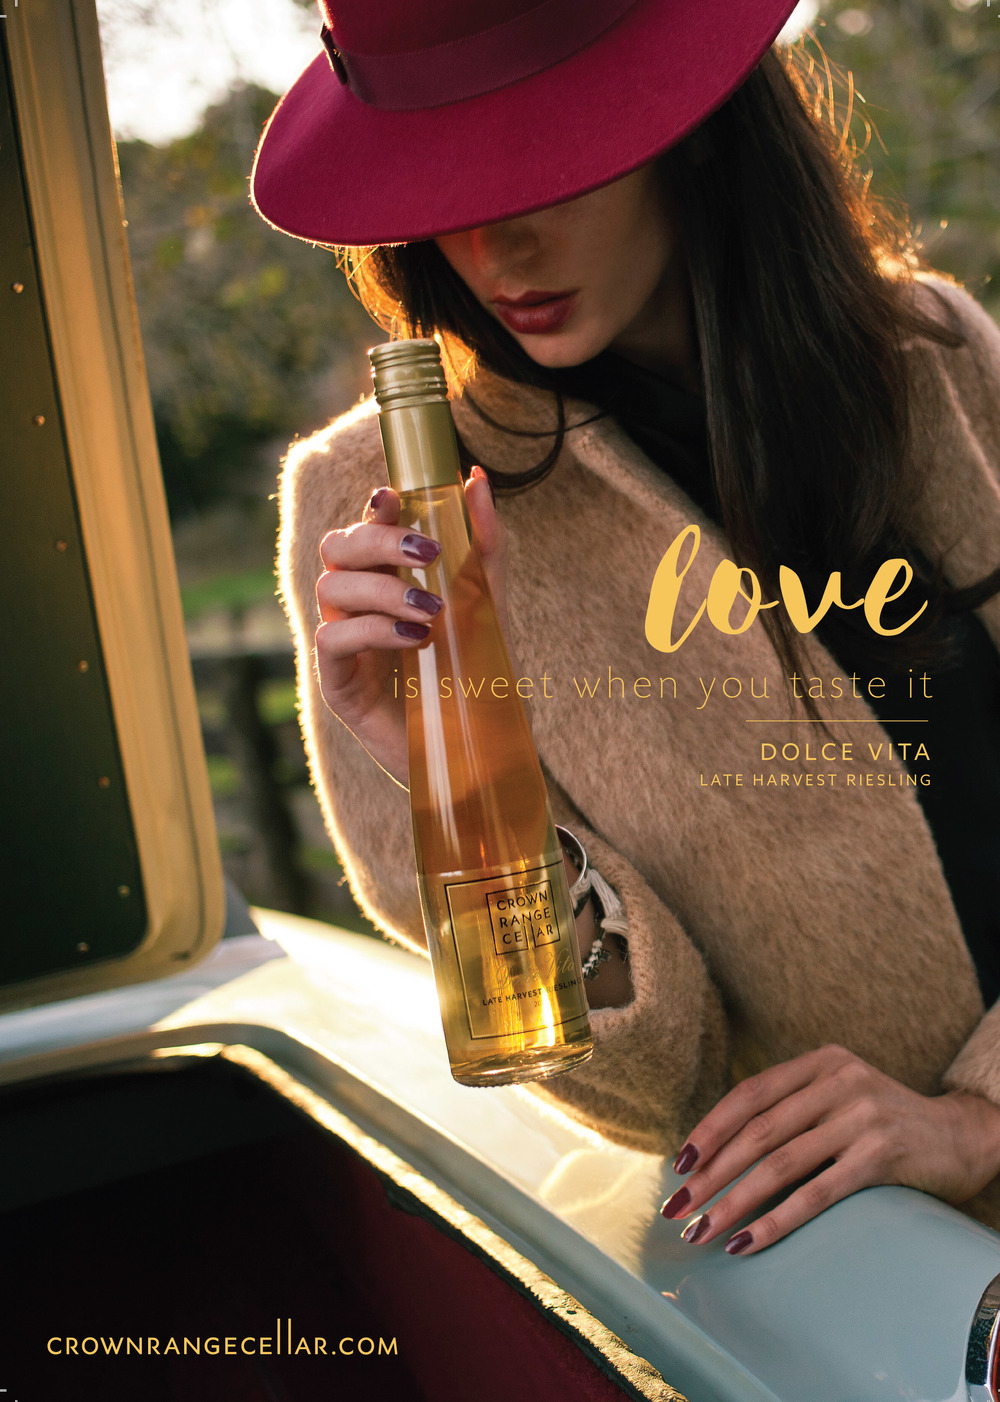 Crown Range Cellar Dolce Vita Campaign Photography and Art Direction